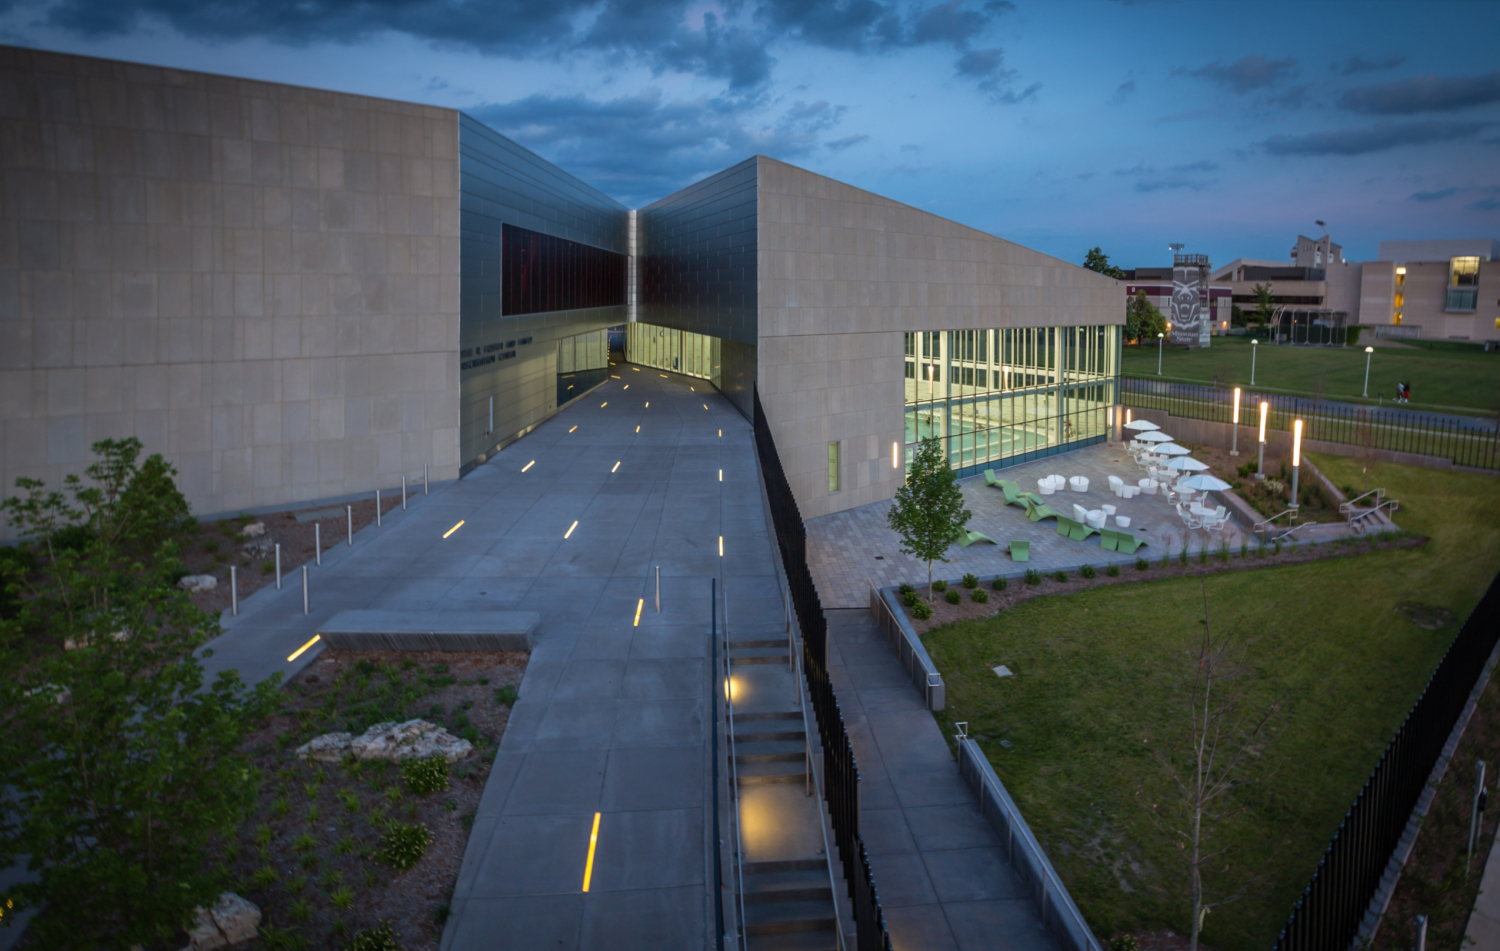 Missouri State University, Bill R. Foster and Family Recreation Center